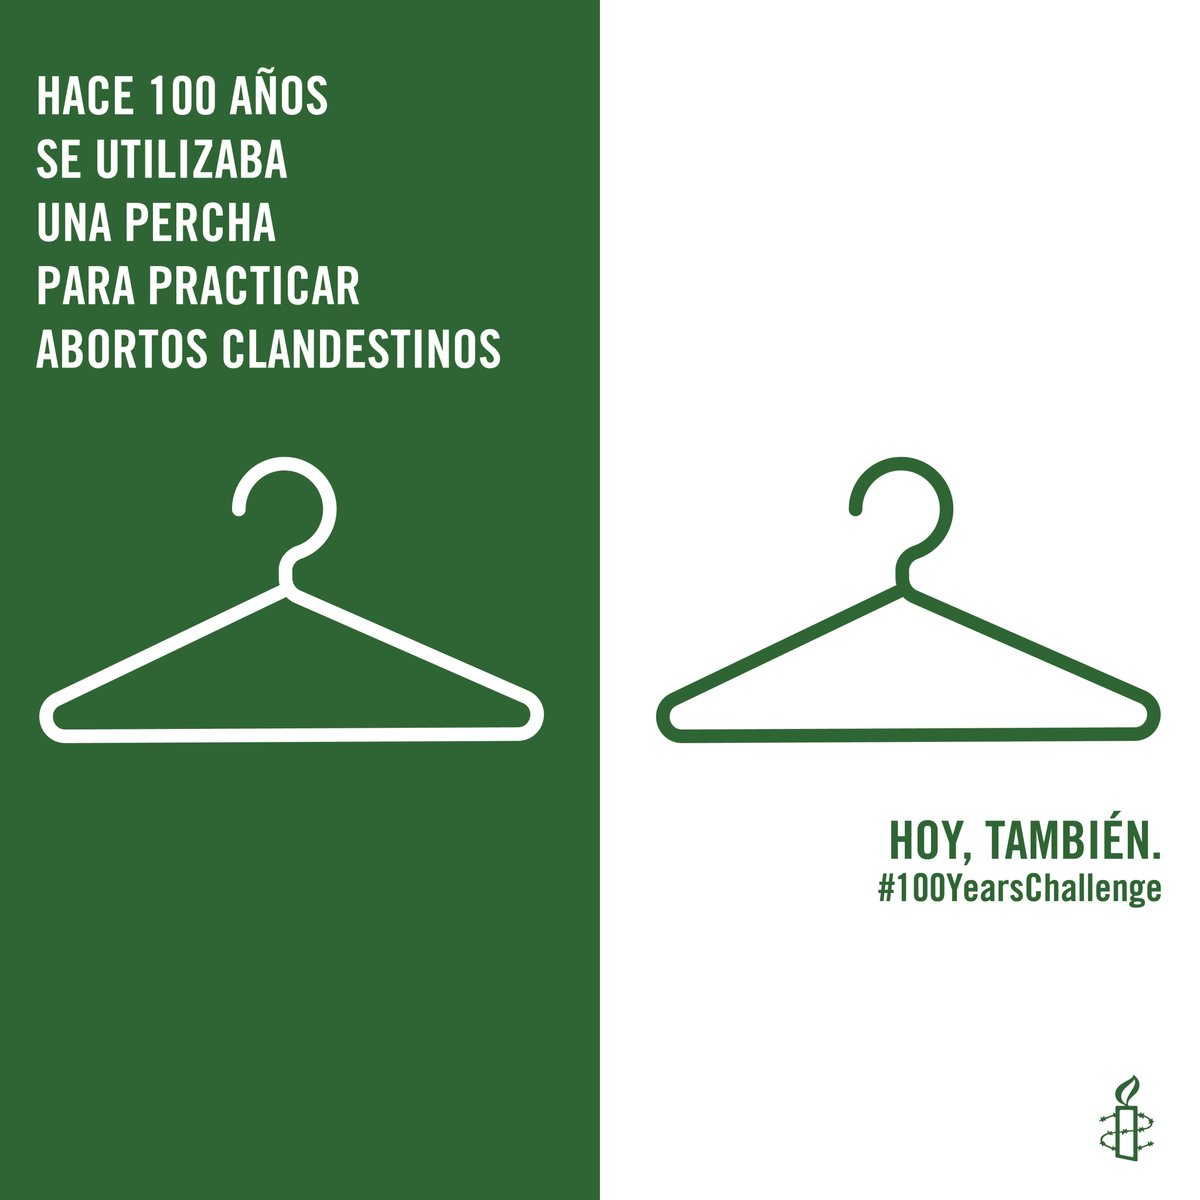 Amnistía Internacional Argentina's photo on #AbortoLegalYa